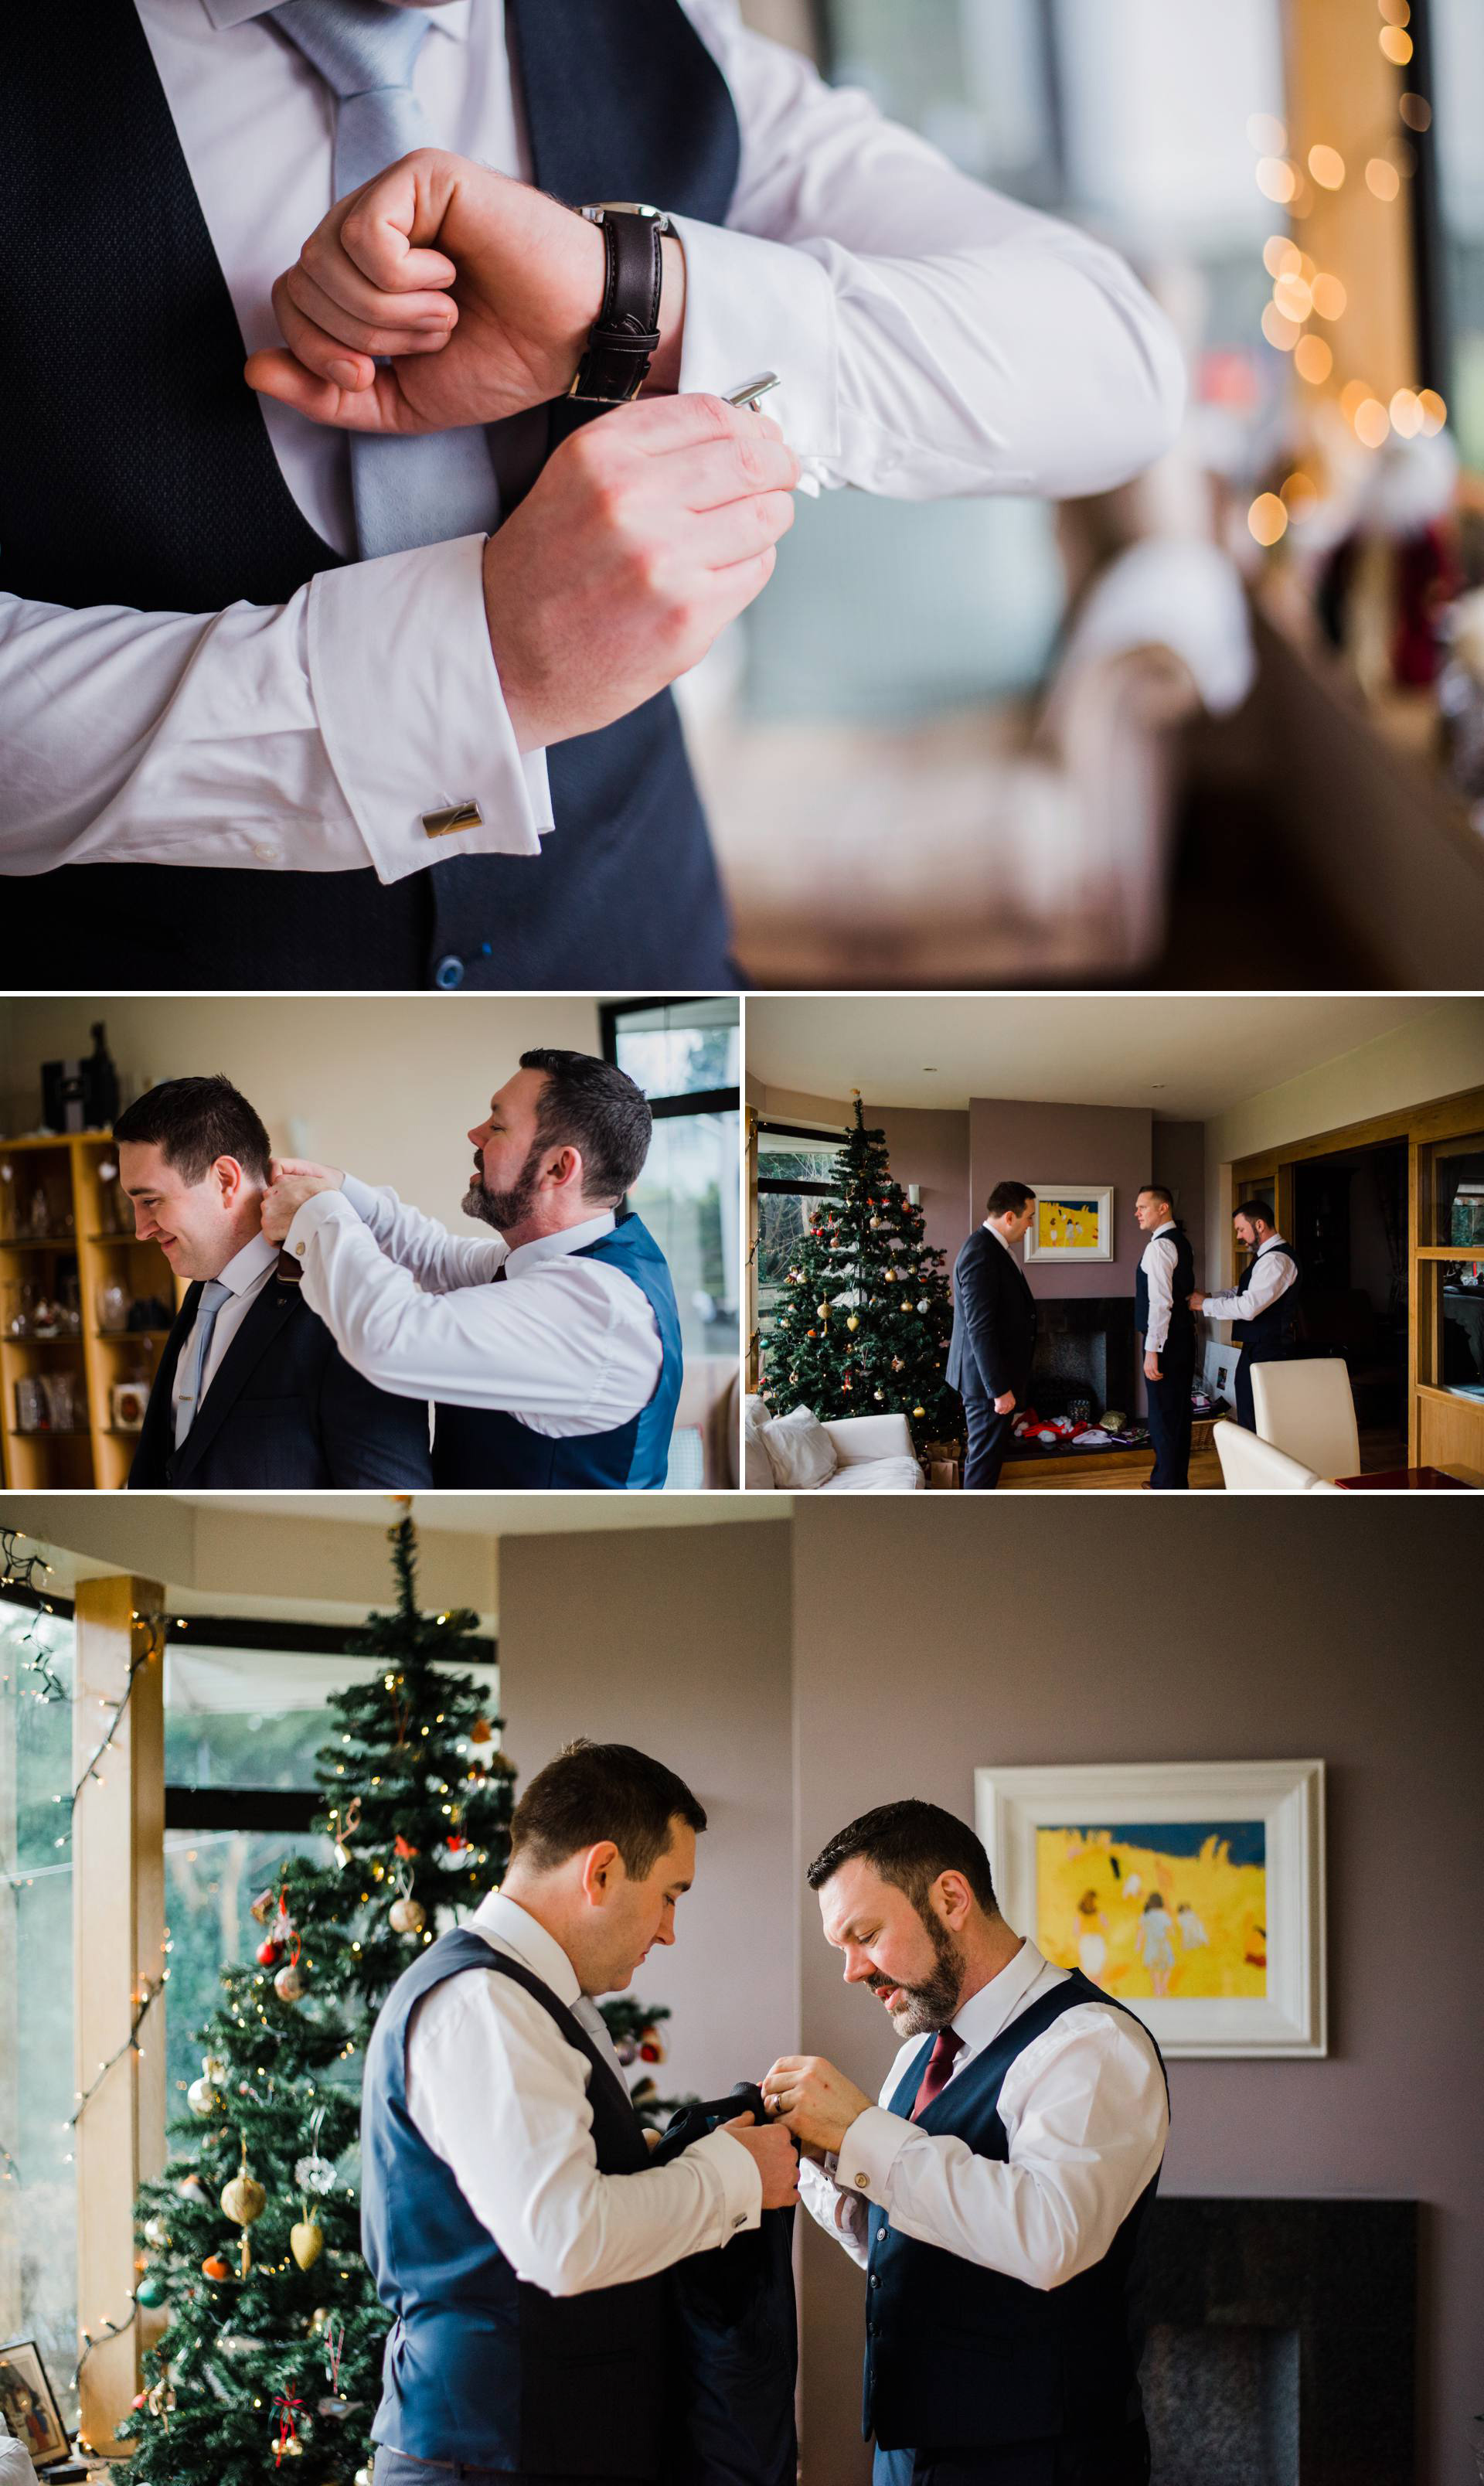 multiple image collage by Dublin wedding photographer Kathy Silke Photography